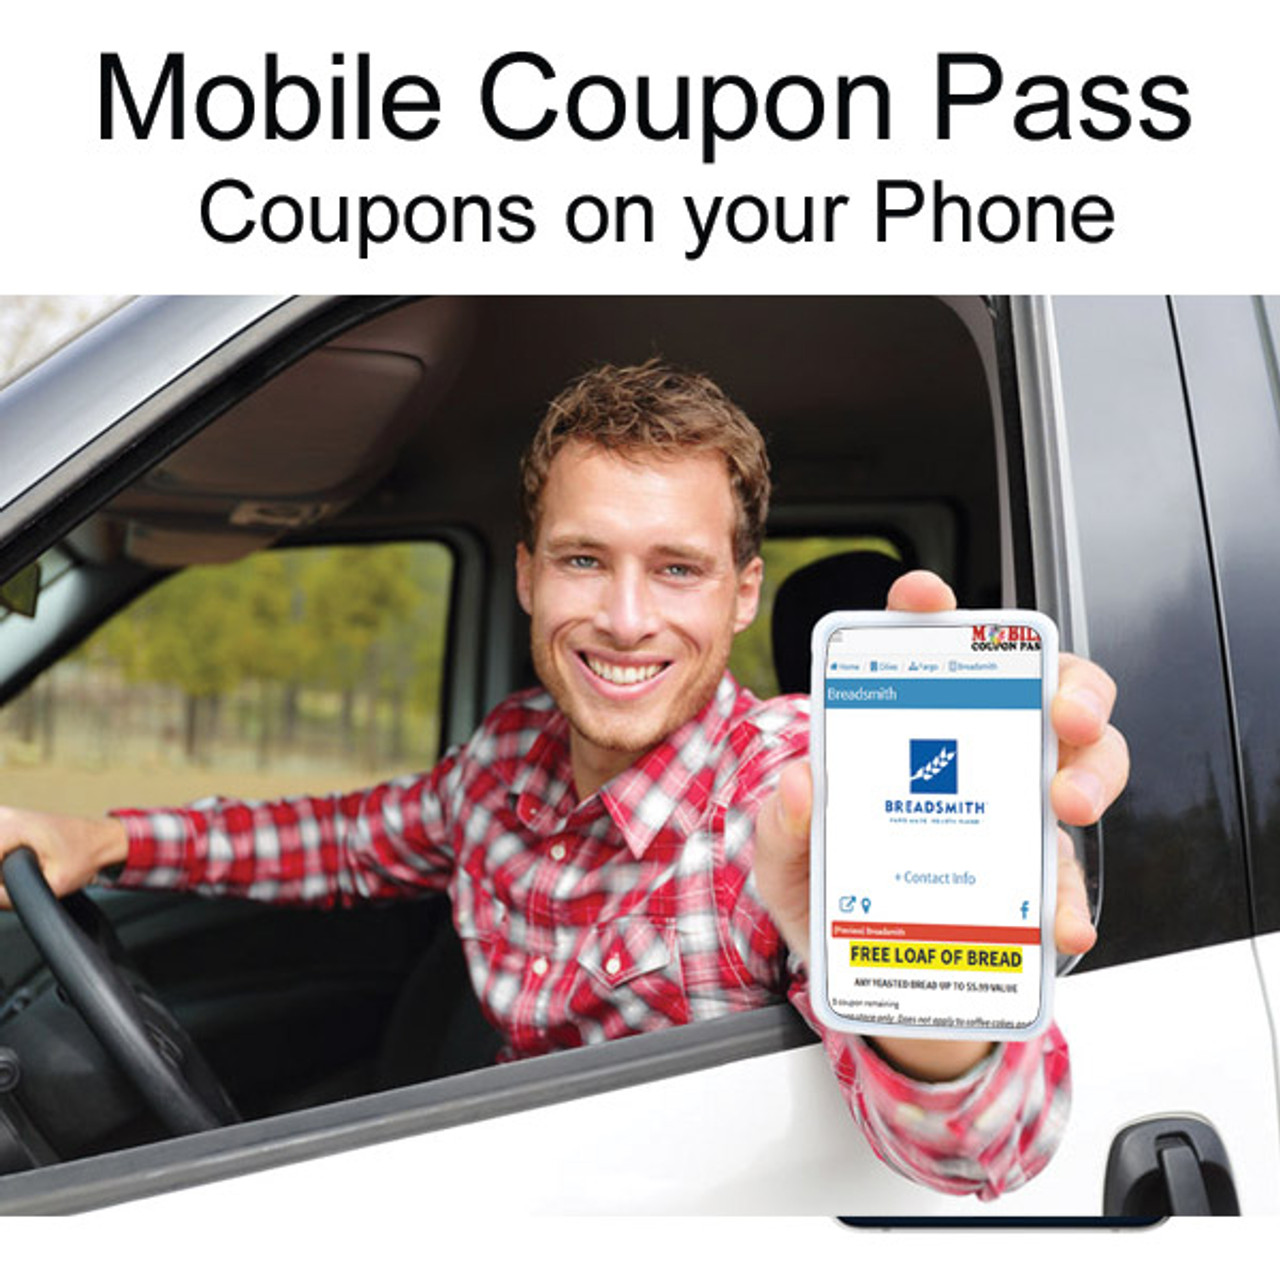 Mobile Coupons in major cities in ND, MN, SD and WI.